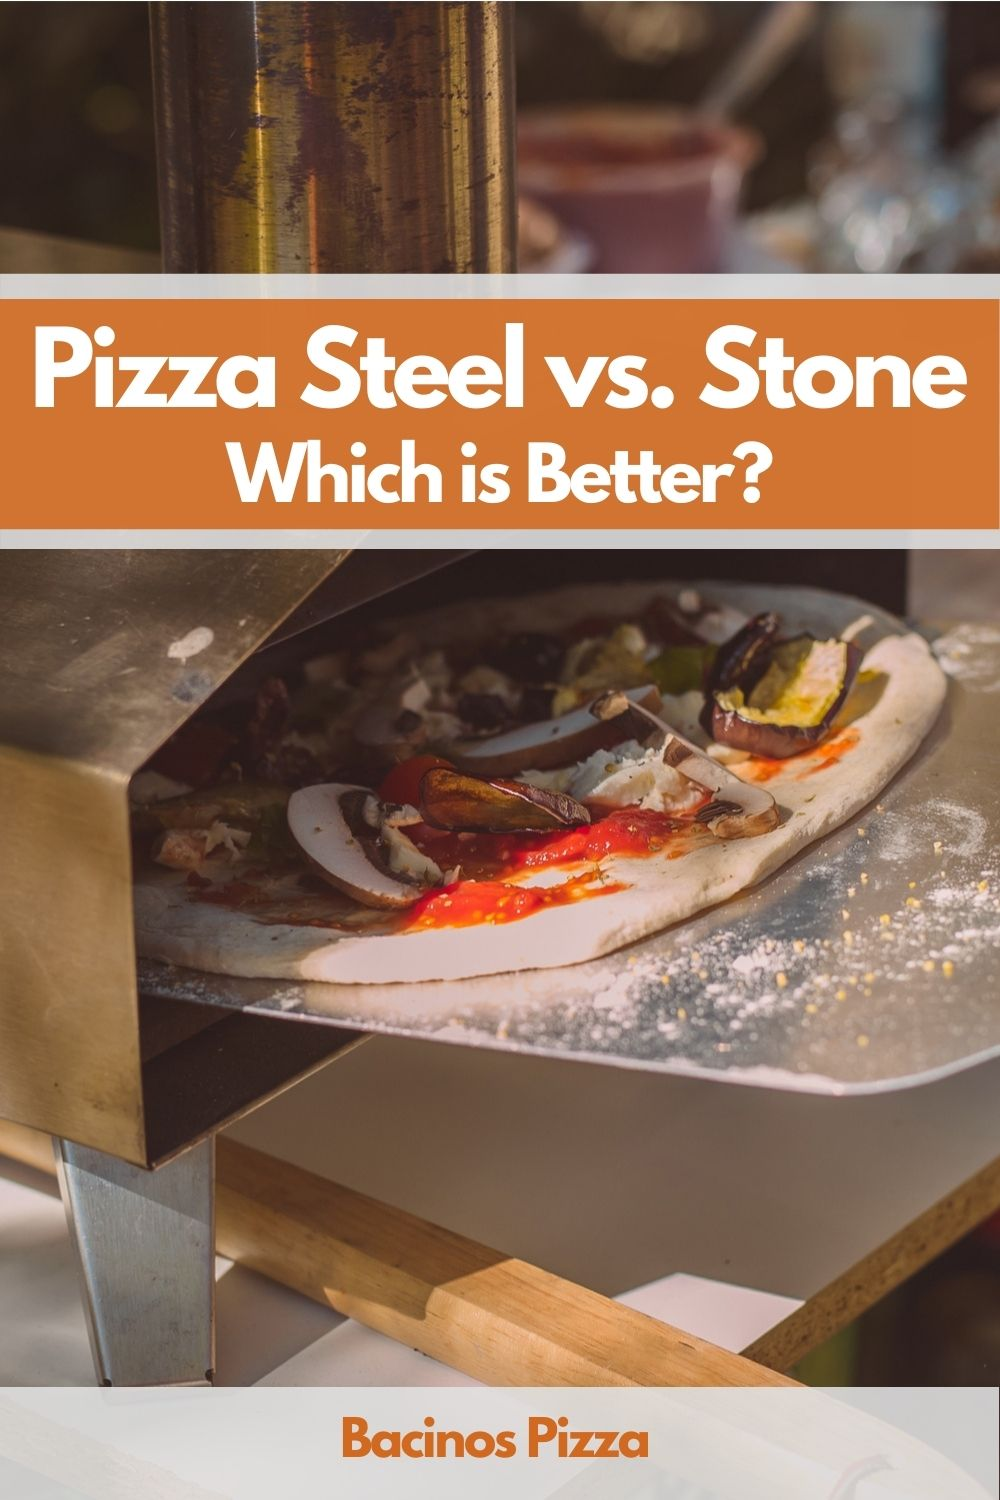 Pizza Steel vs. Stone pin 1